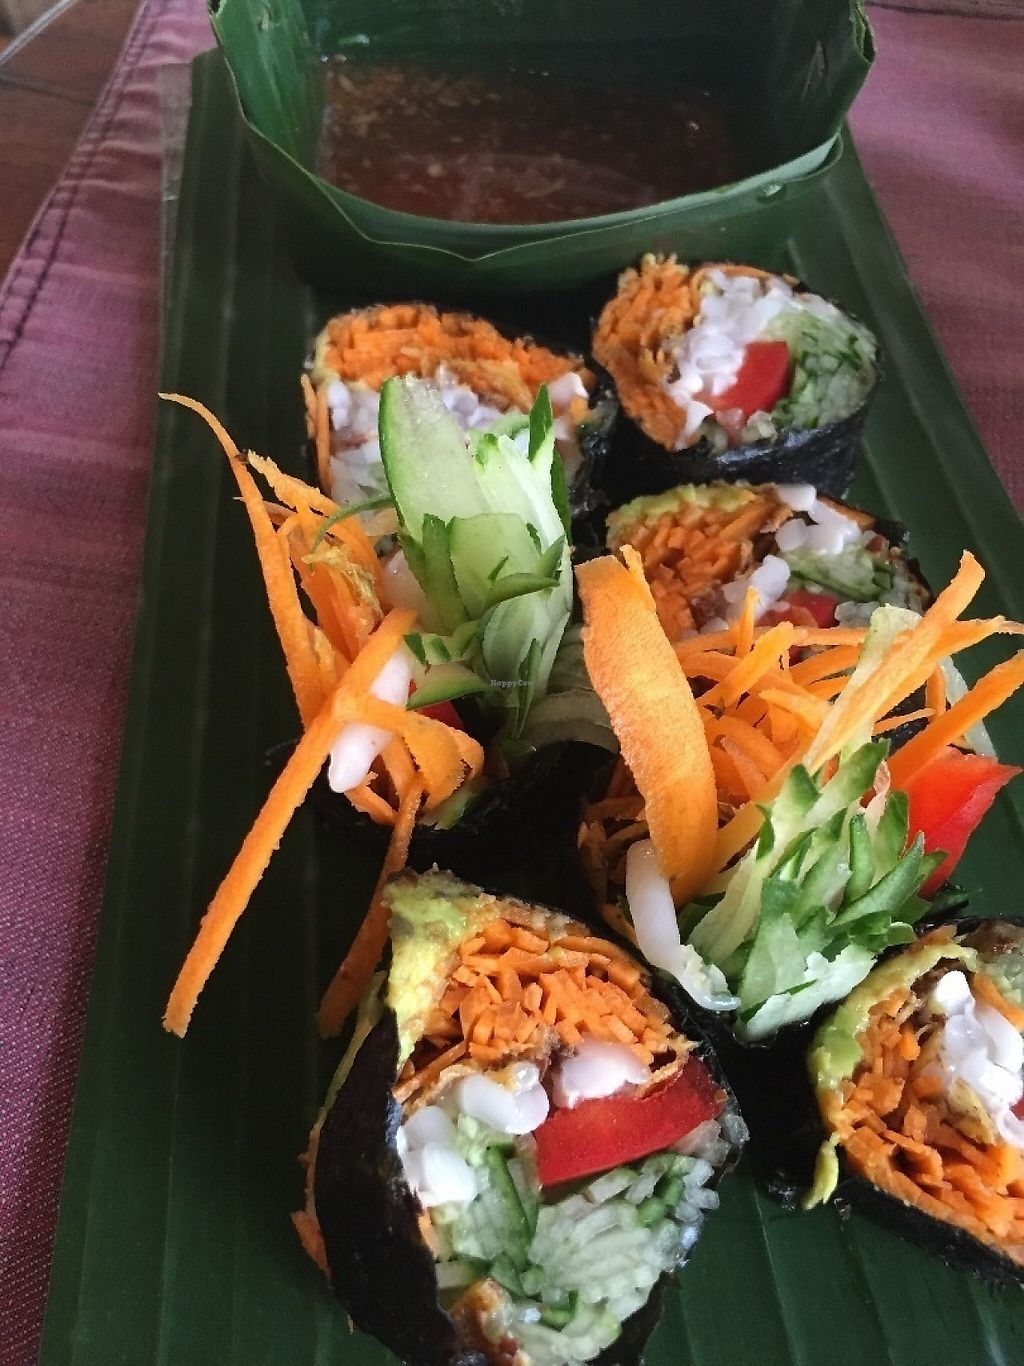 """Photo of Ubud Sari Health Resort  by <a href=""""/members/profile/Eefie"""">Eefie</a> <br/>Raw sushi <br/> May 31, 2017  - <a href='/contact/abuse/image/59/264387'>Report</a>"""